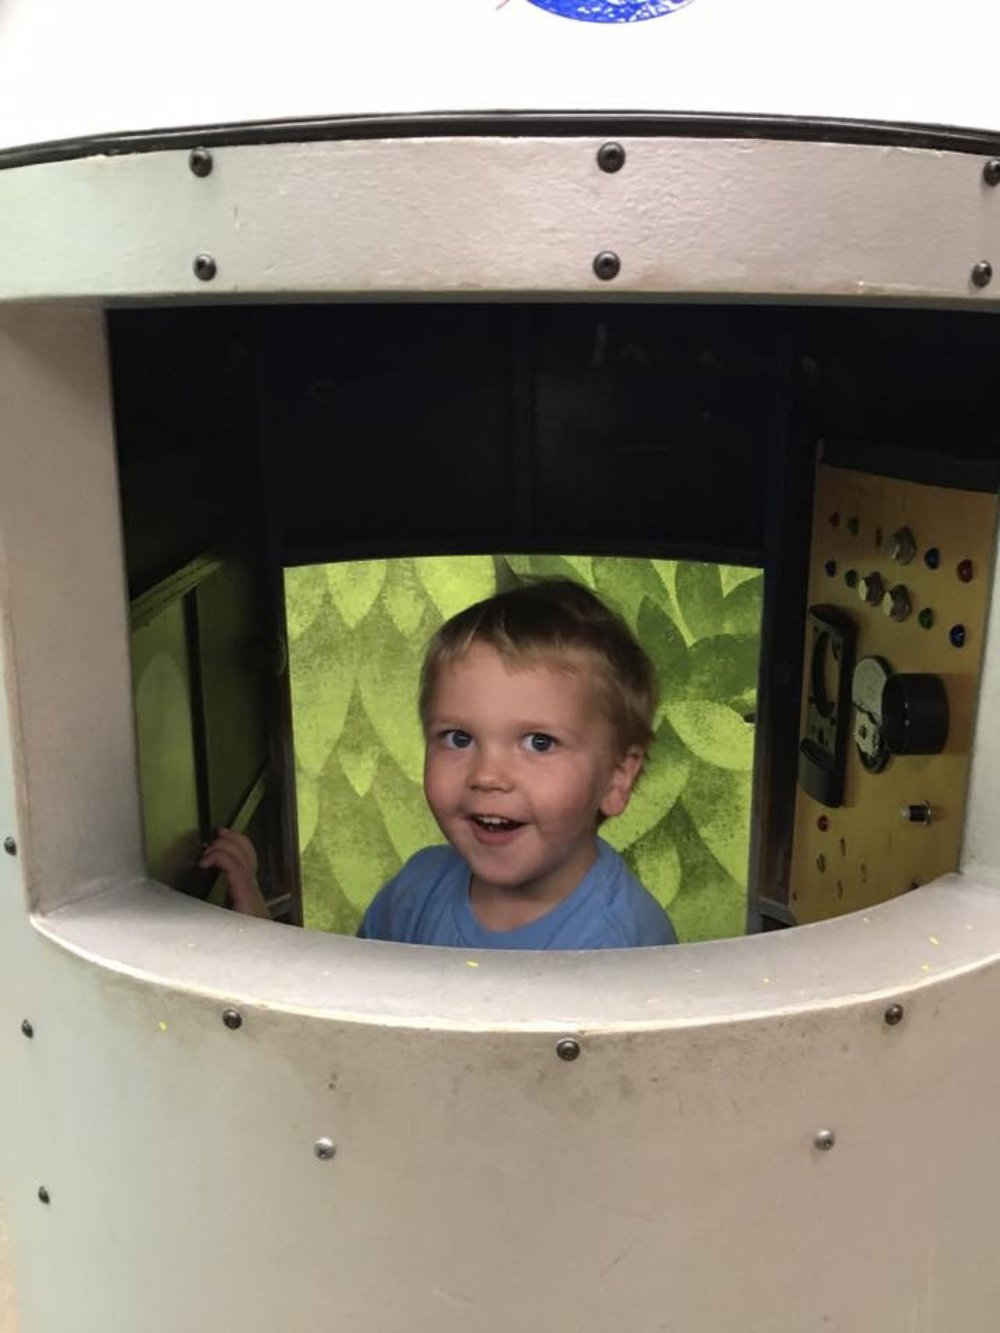 In a rocket ship! (November 2016)